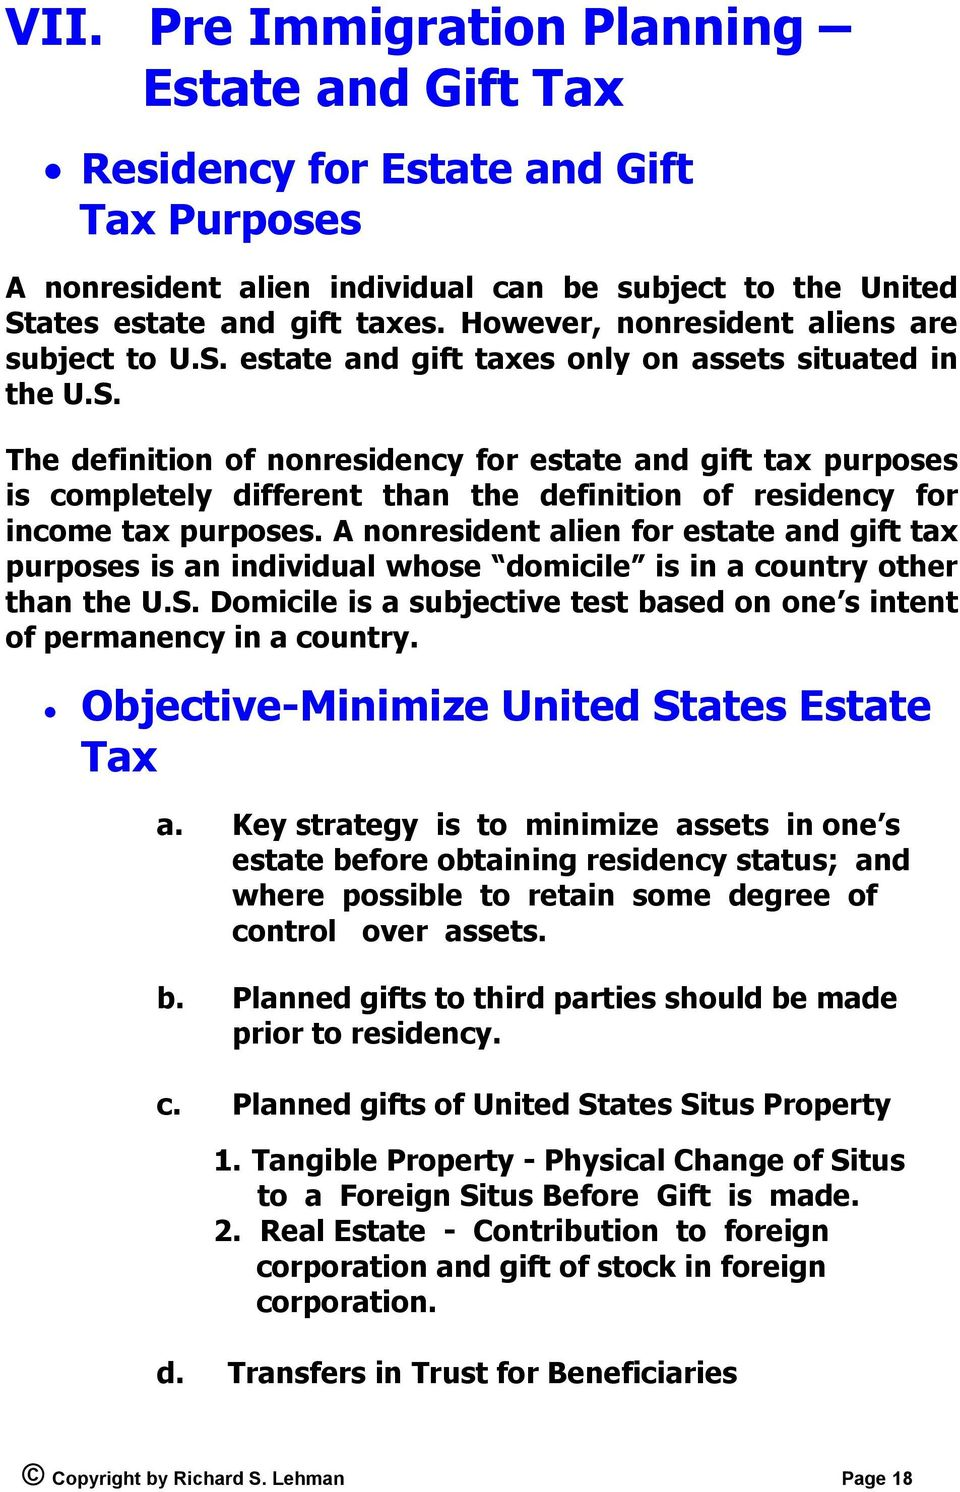 A nonresident alien for estate and gift tax purposes is an individual whose domicile is in a country other than the U.S. Domicile is a subjective test based on one s intent of permanency in a country.